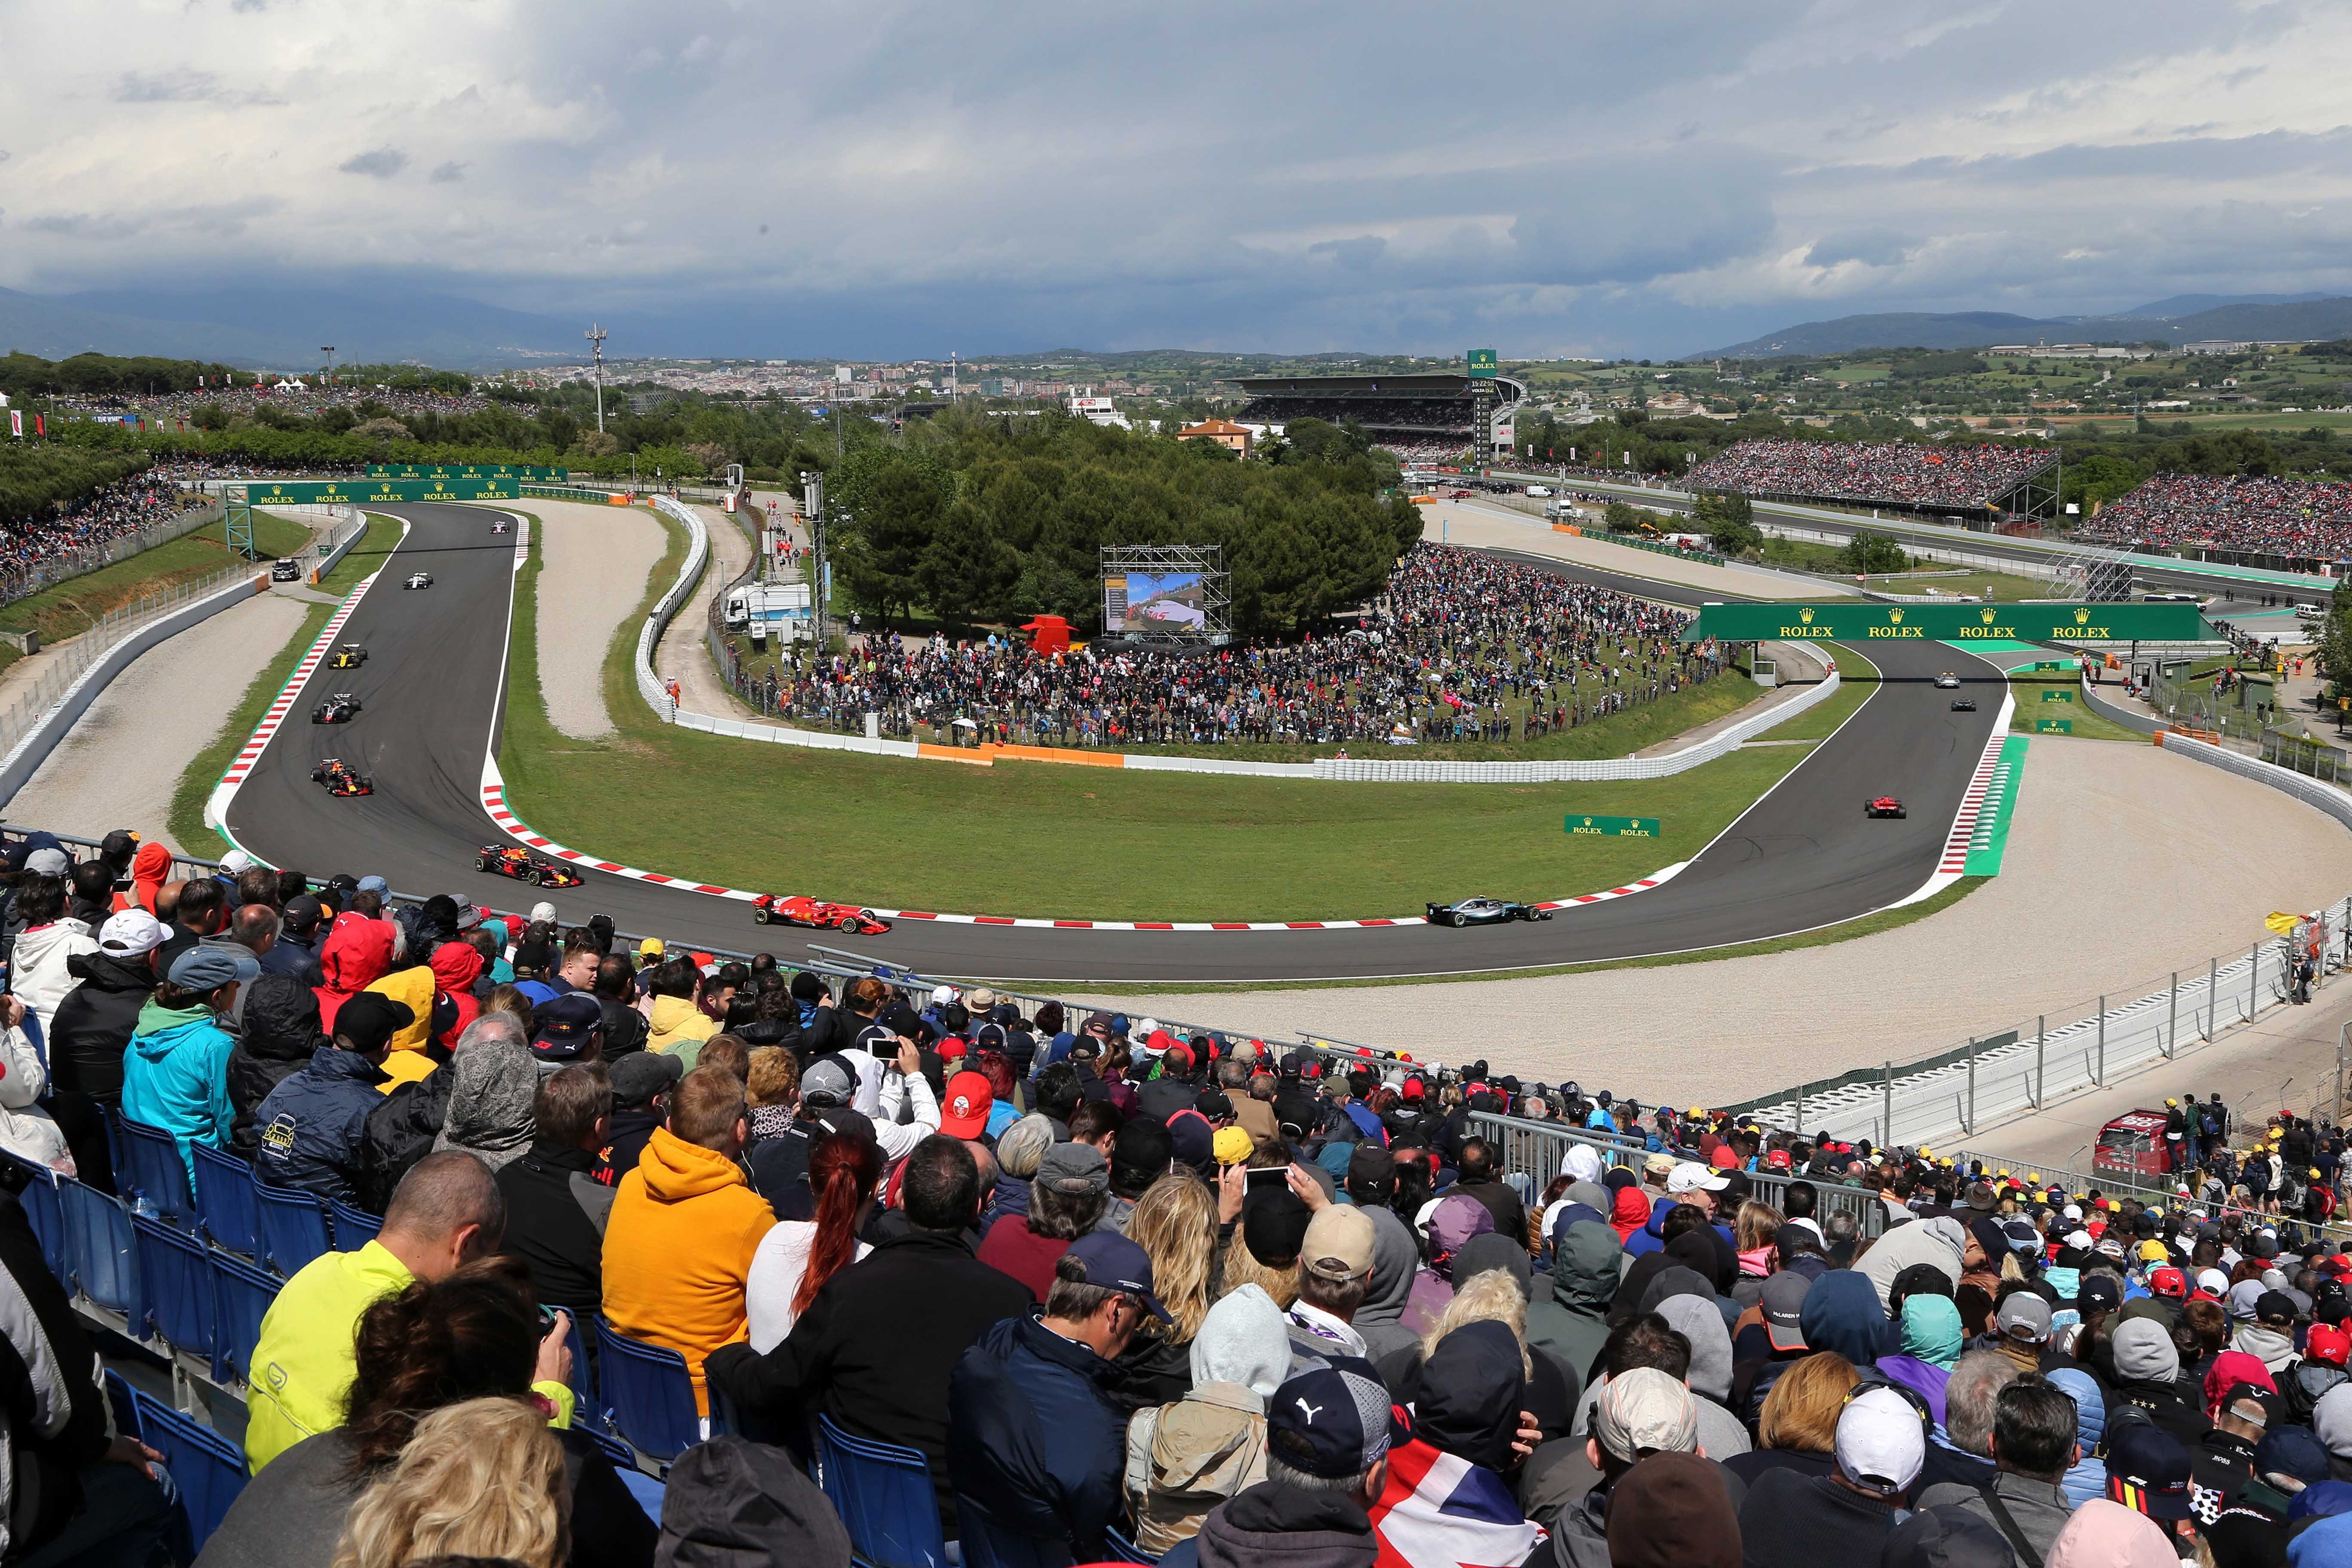 4, 5 of 6 dagen naar de Formule 1: Grand Prix 2019 in Barcelona, incl. GP tickets o.b.v. halfpension!